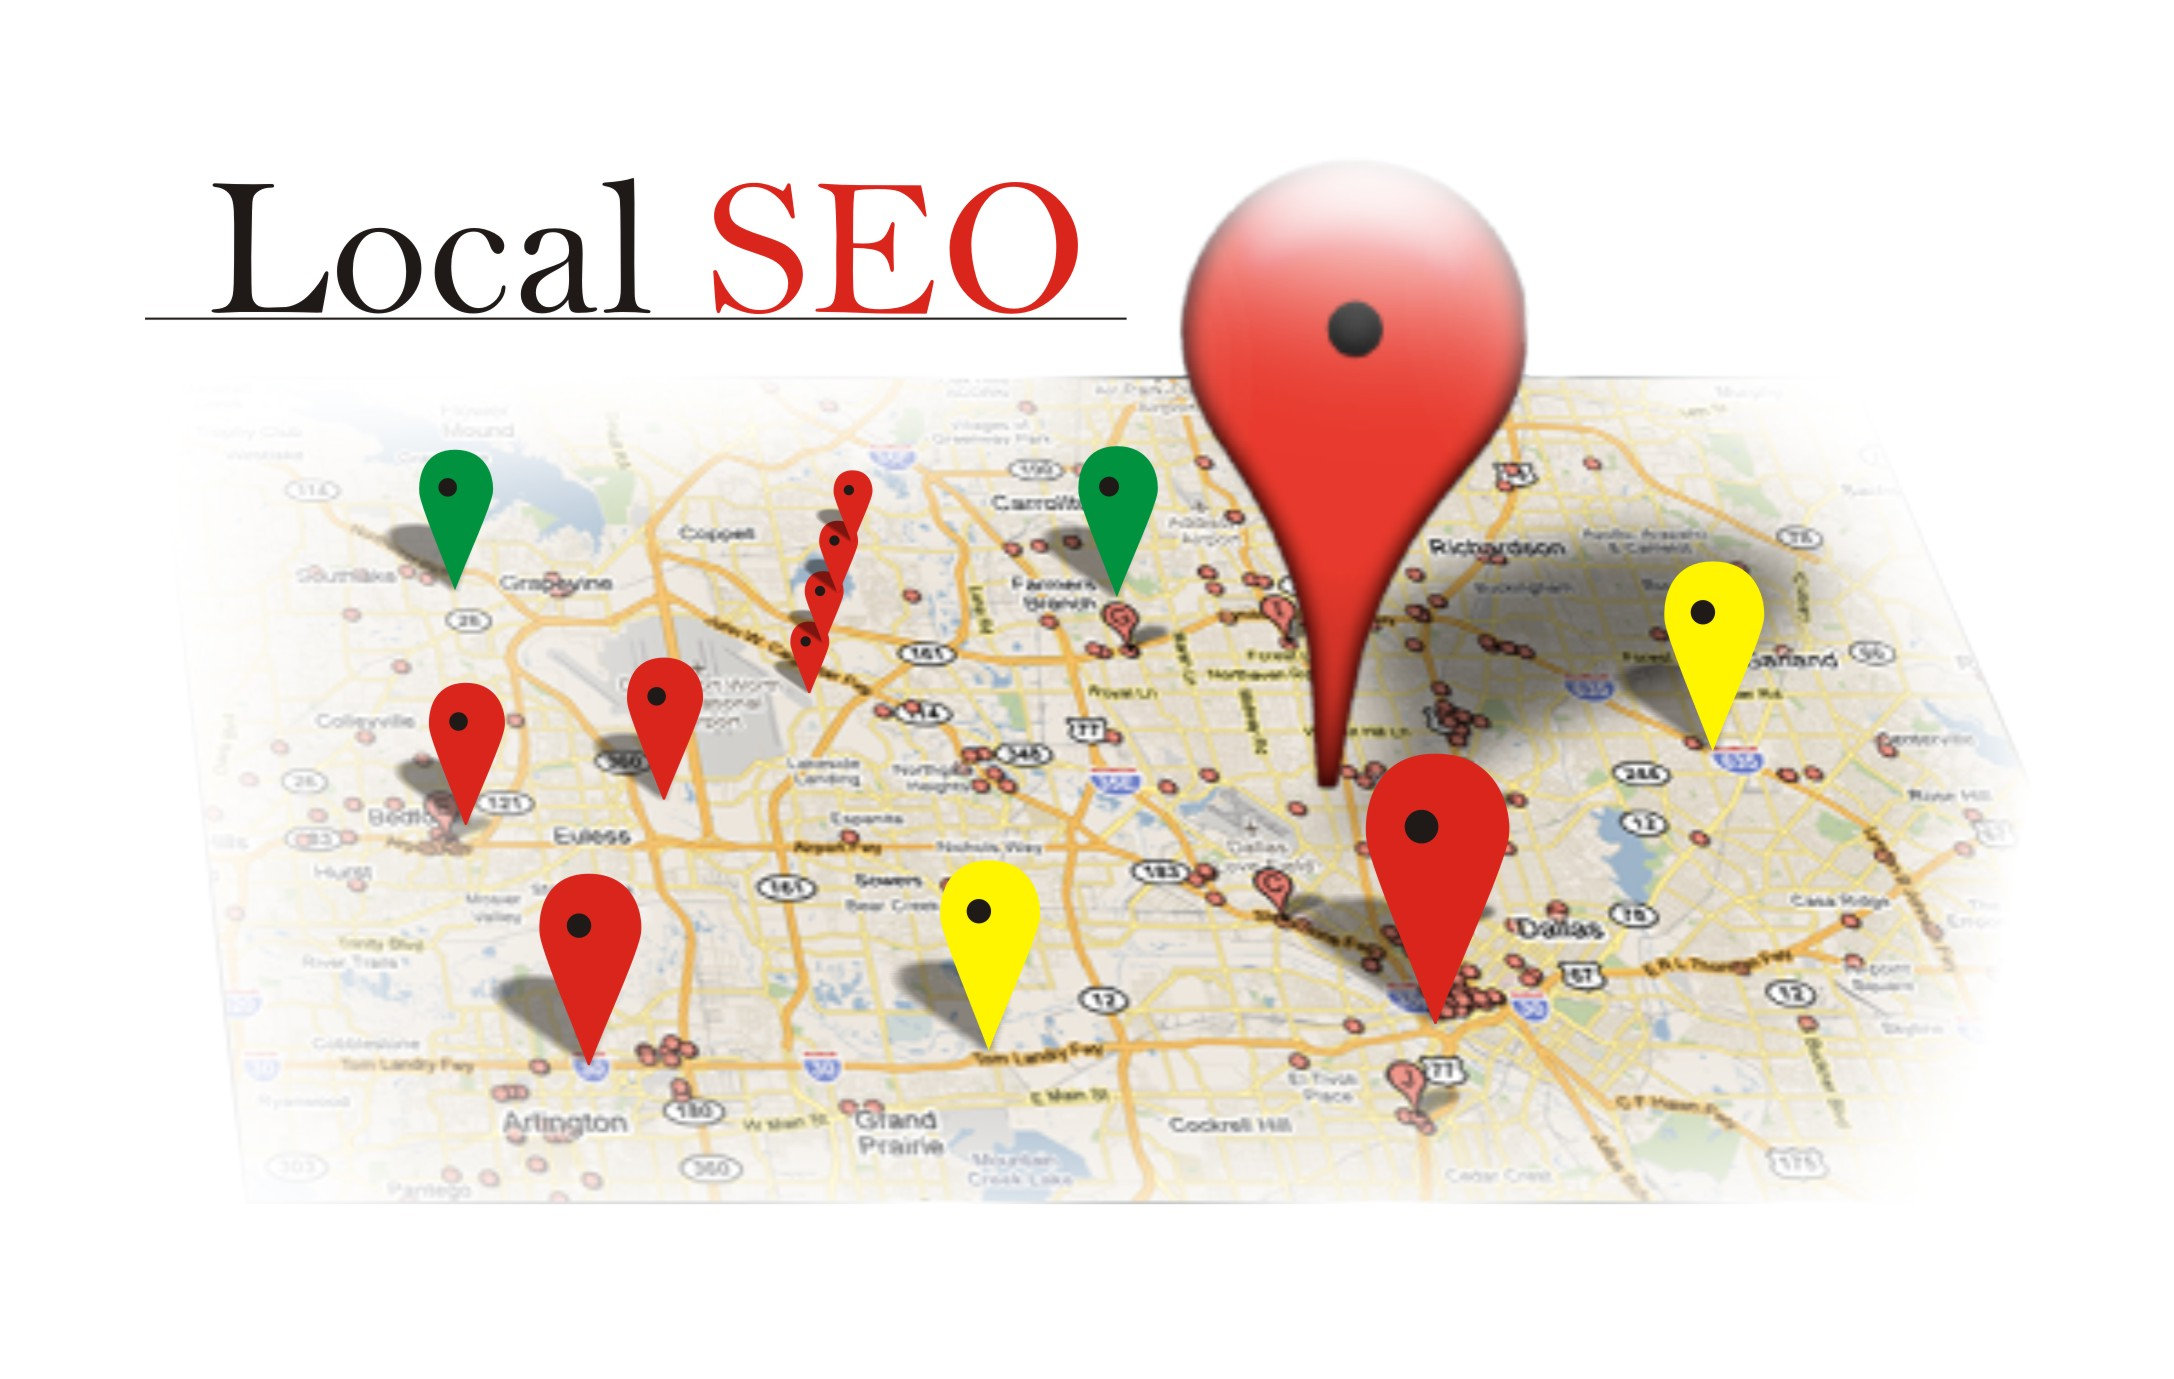 About Local SEO